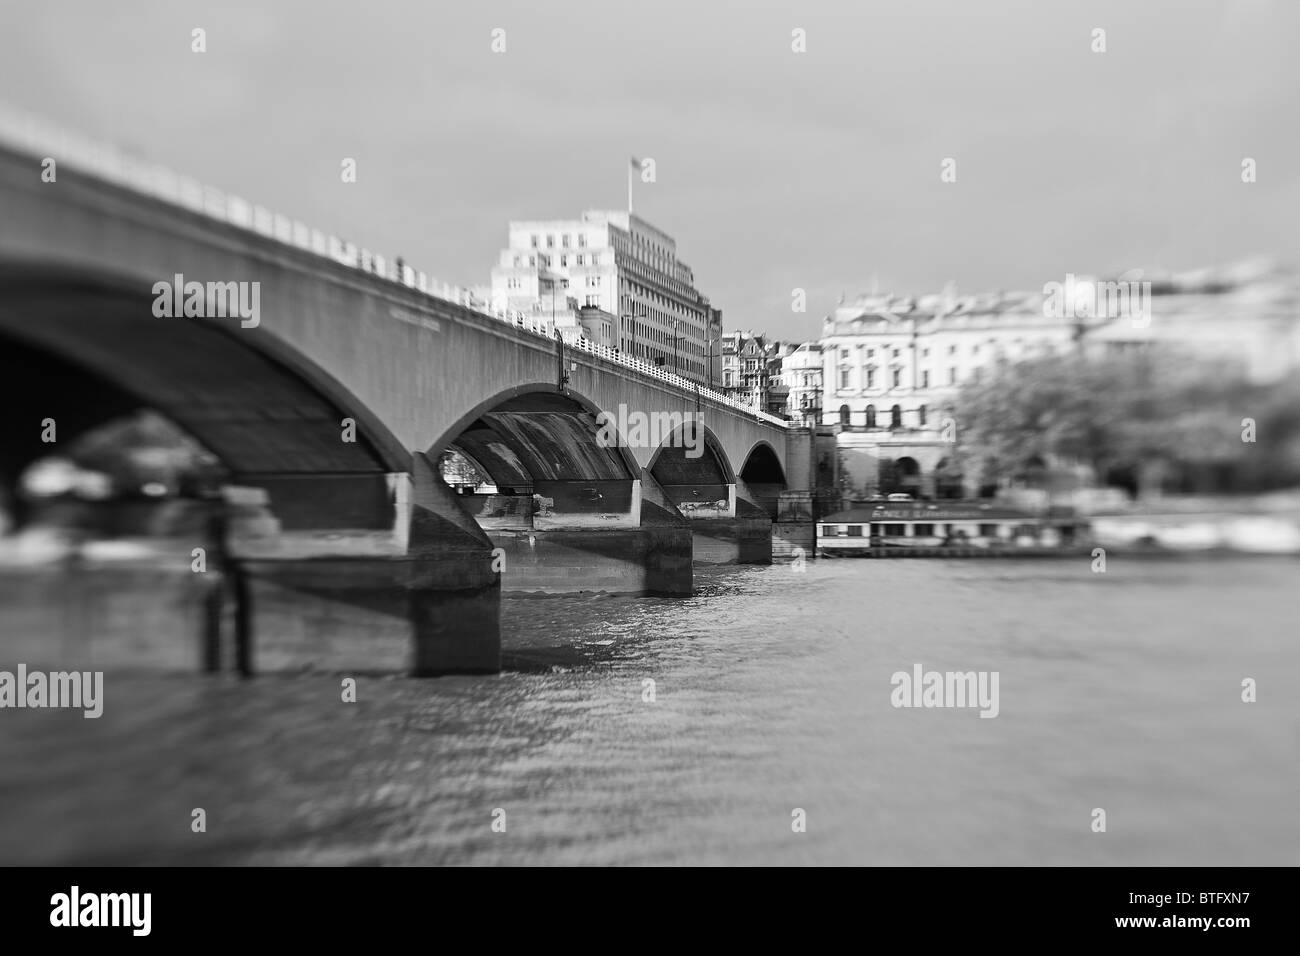 Waterloo Bridge London Across The River Thames London With Somerset House In The Background - Stock Image